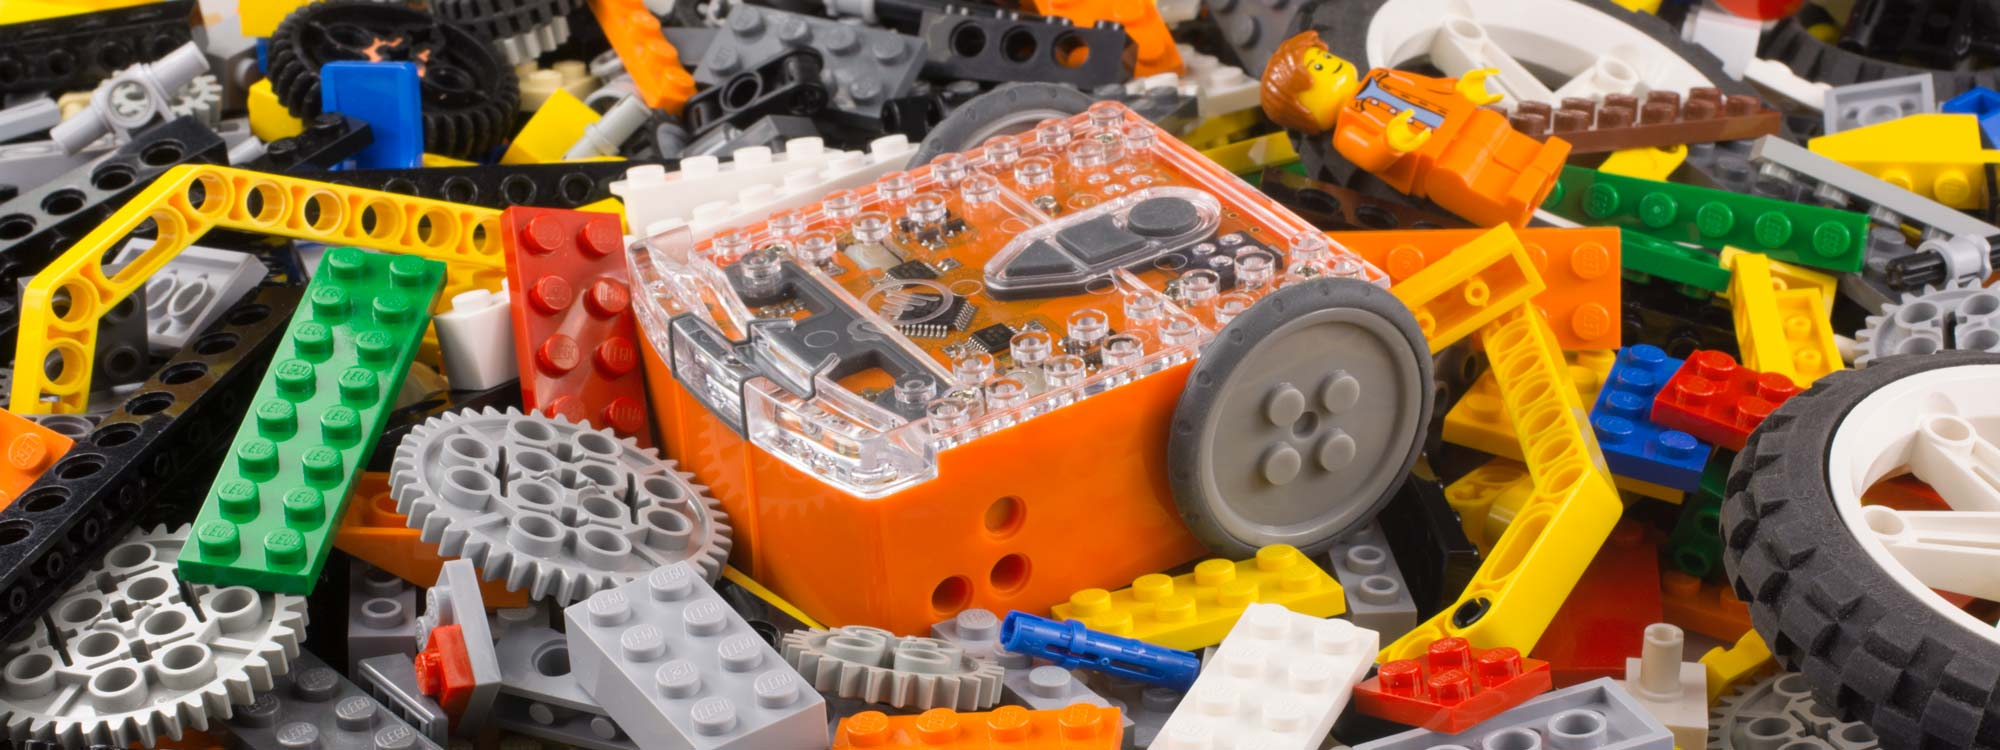 Edison robots work with LEGO bricks – affordable, educational and fun